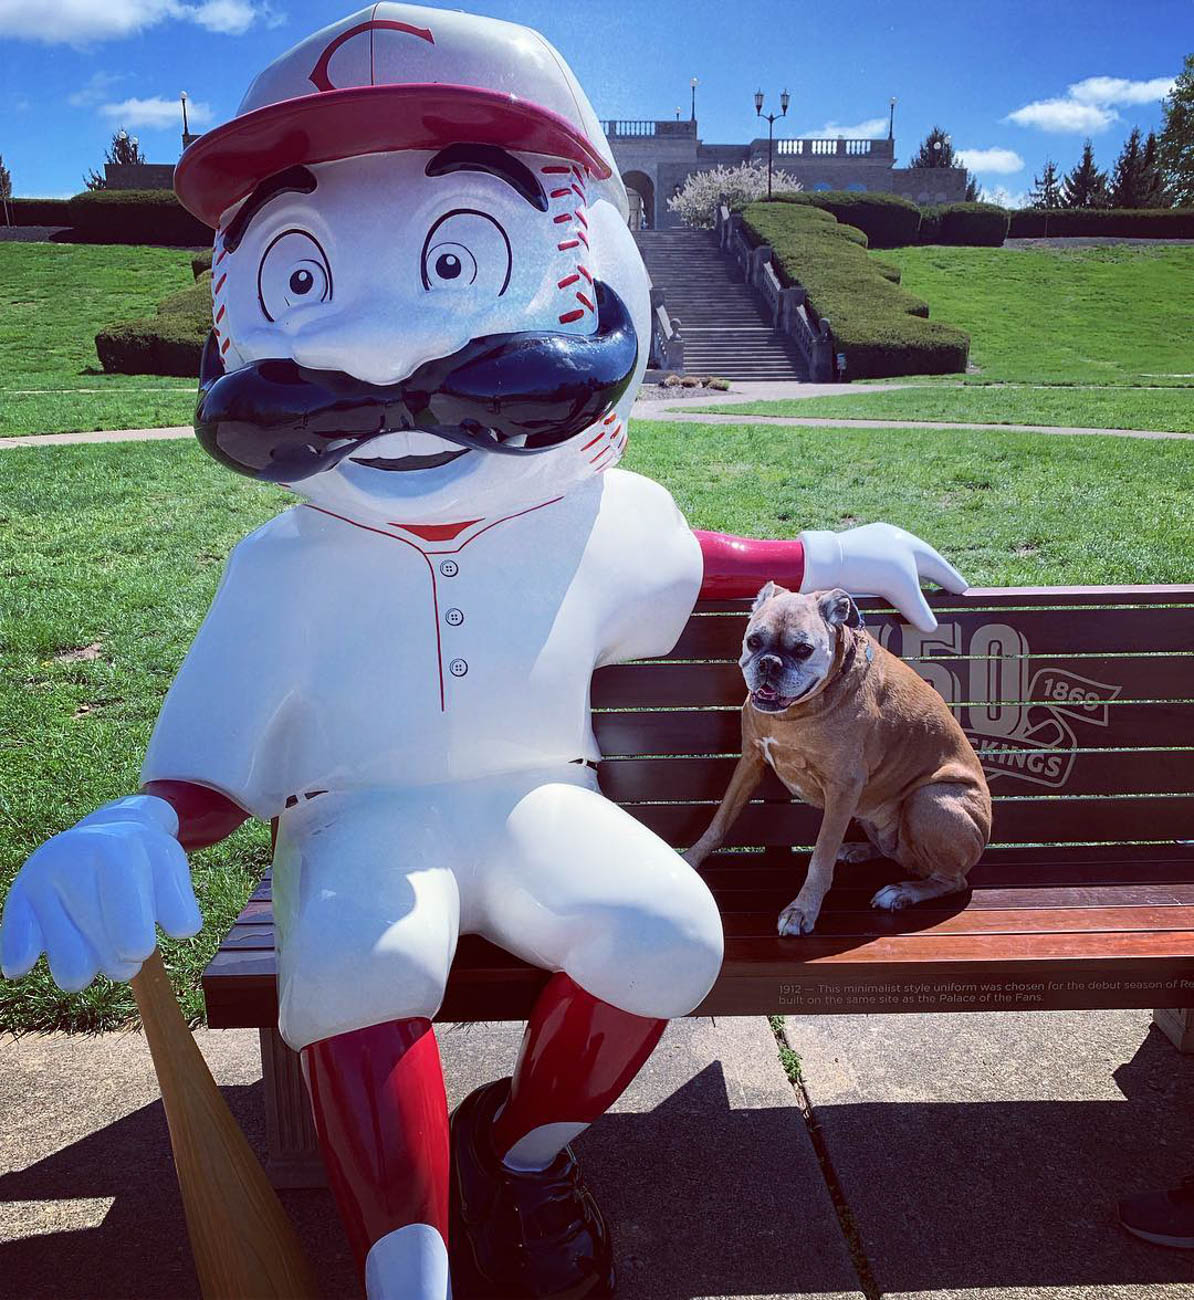 To celebrate the Reds' 150th Anniversary, 24 benches featuring Mr. Redlegs sculptures have been added to various spots around the area, as well as out of town locations including Dayton, Loveland, and Louisville, for the perfect Reds photo op. The mascot sports different uniforms from throughout the team's history at each of the benches. The Reds have been wearing these same throwback uniforms during their 2019 season.  / Location: Ault Park / Uniform: 1912 / Image courtesy of Instagram user @kmmarsh     // Published: 5.14.19{ }